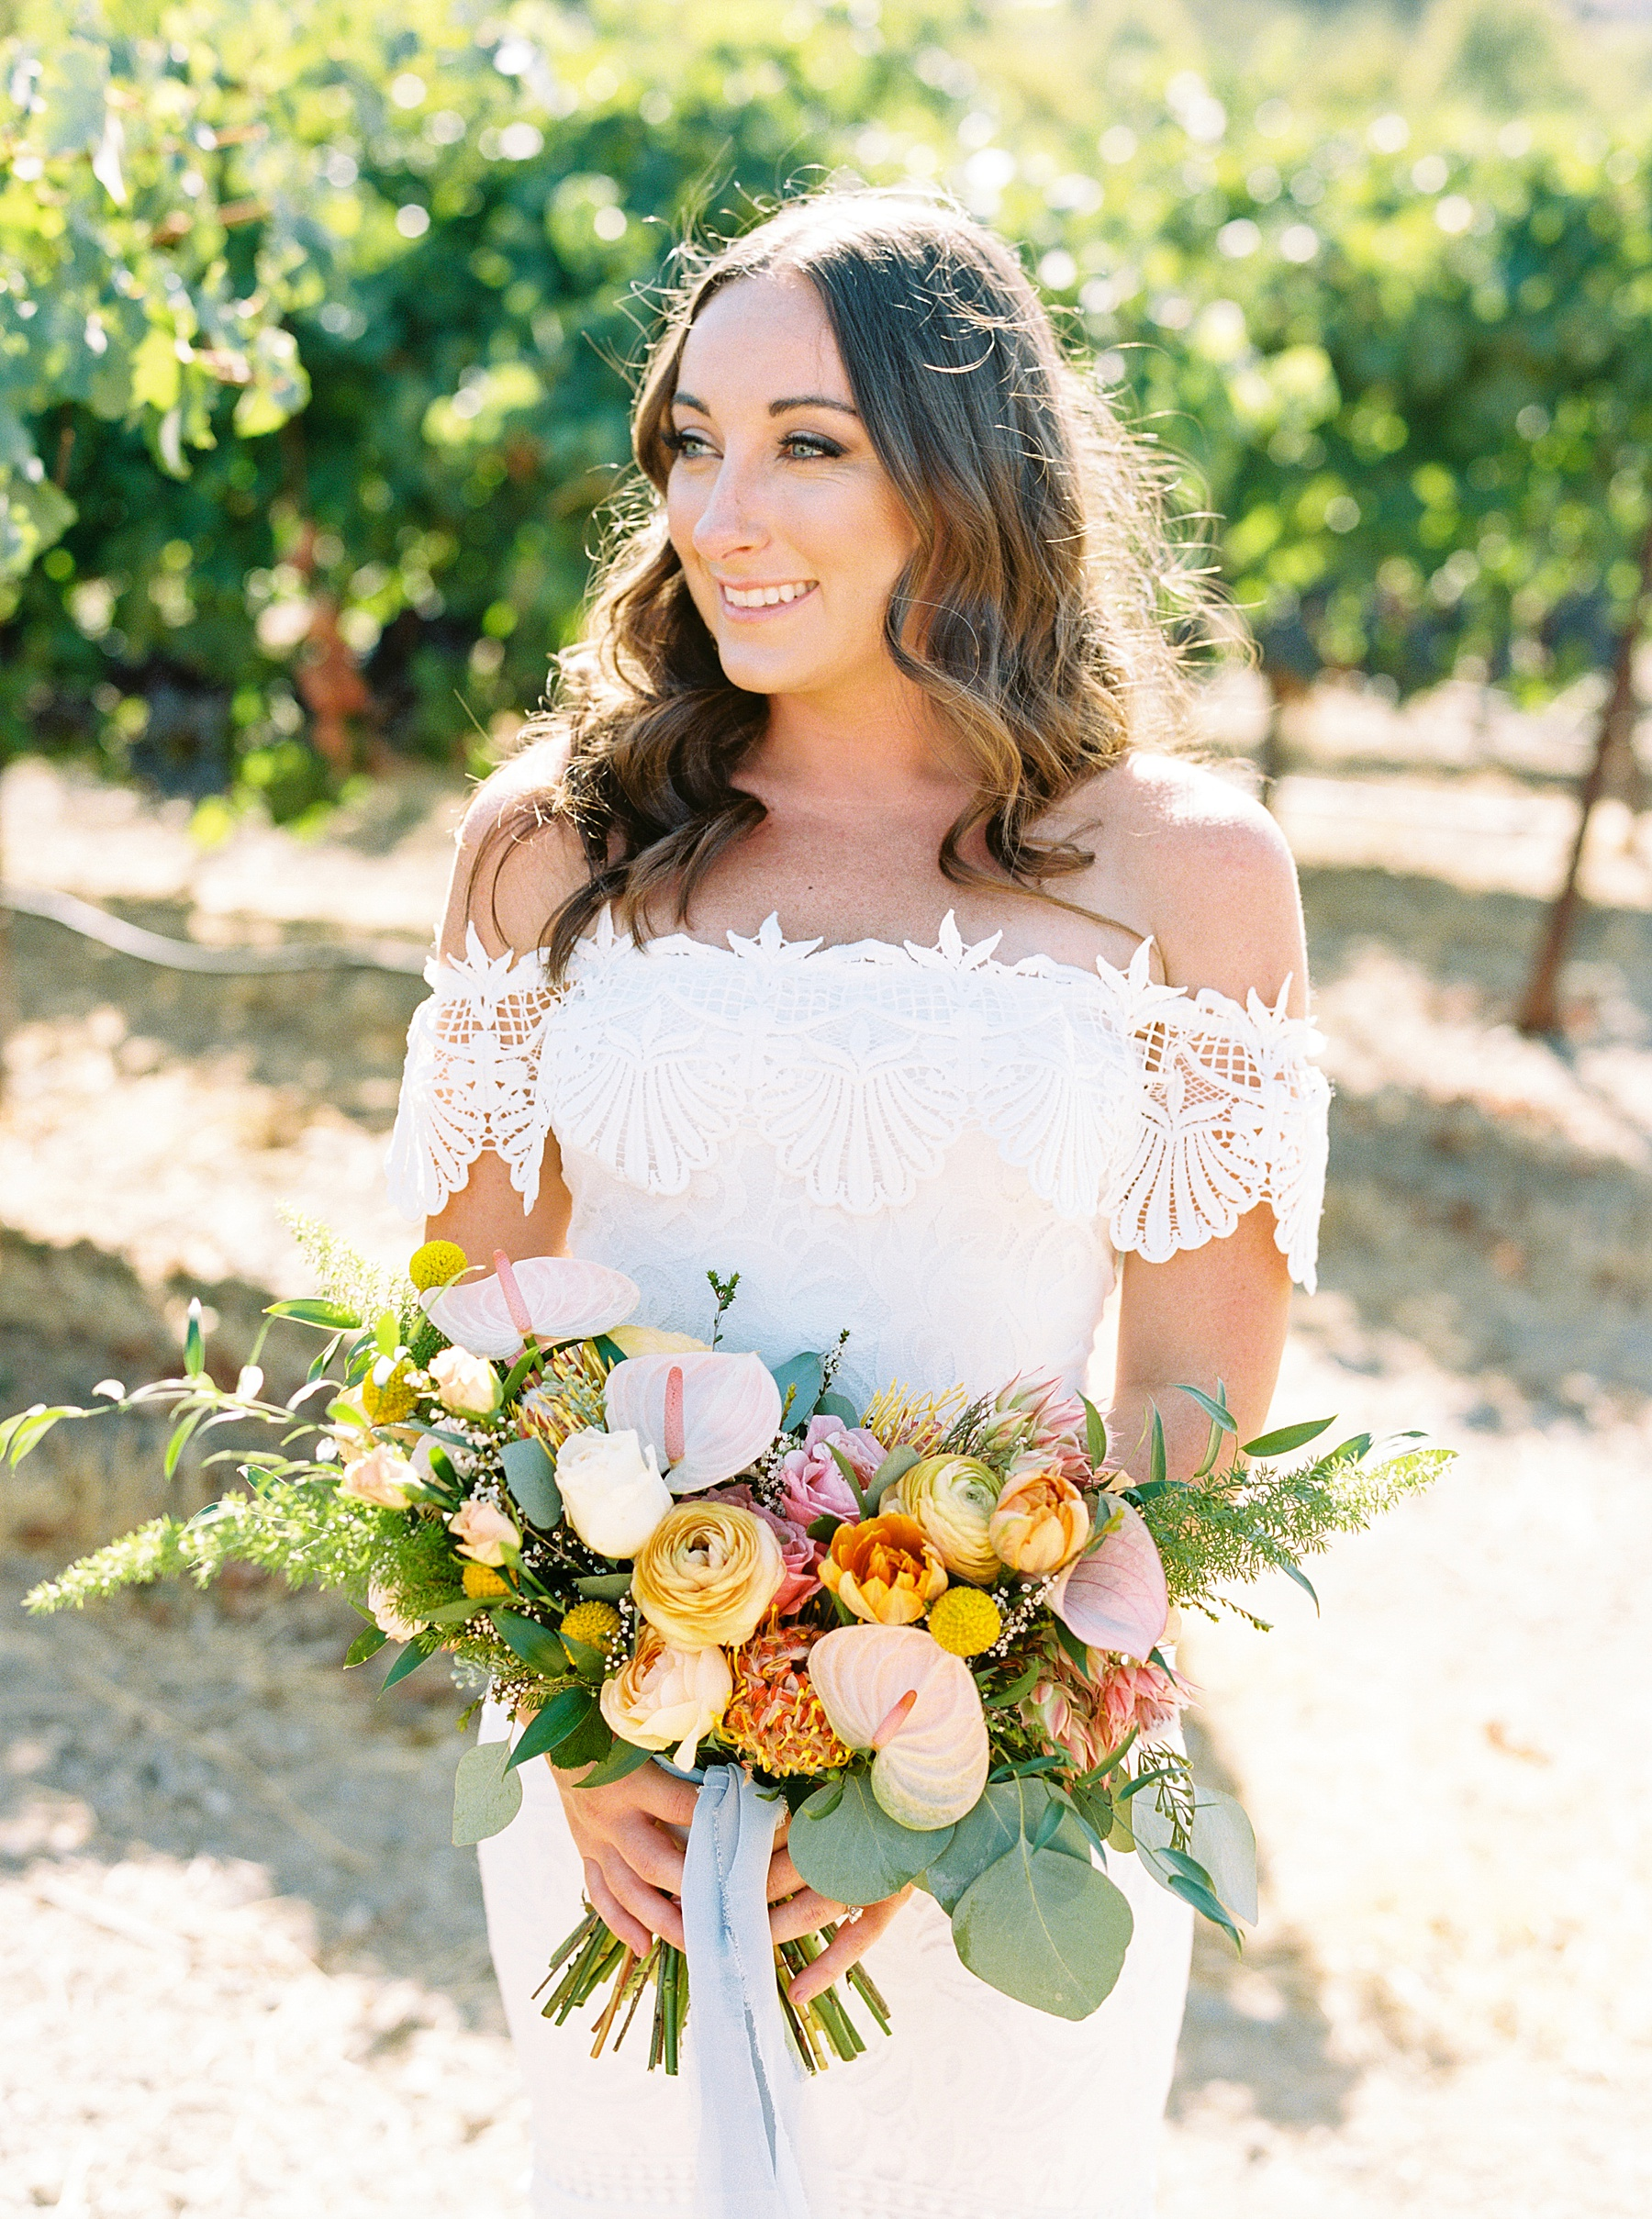 Wente Wedding with A Tropical Color Palette - Ashley & Mike - Featured on Inspired by This - Ashley Baumgartner_0032.jpg